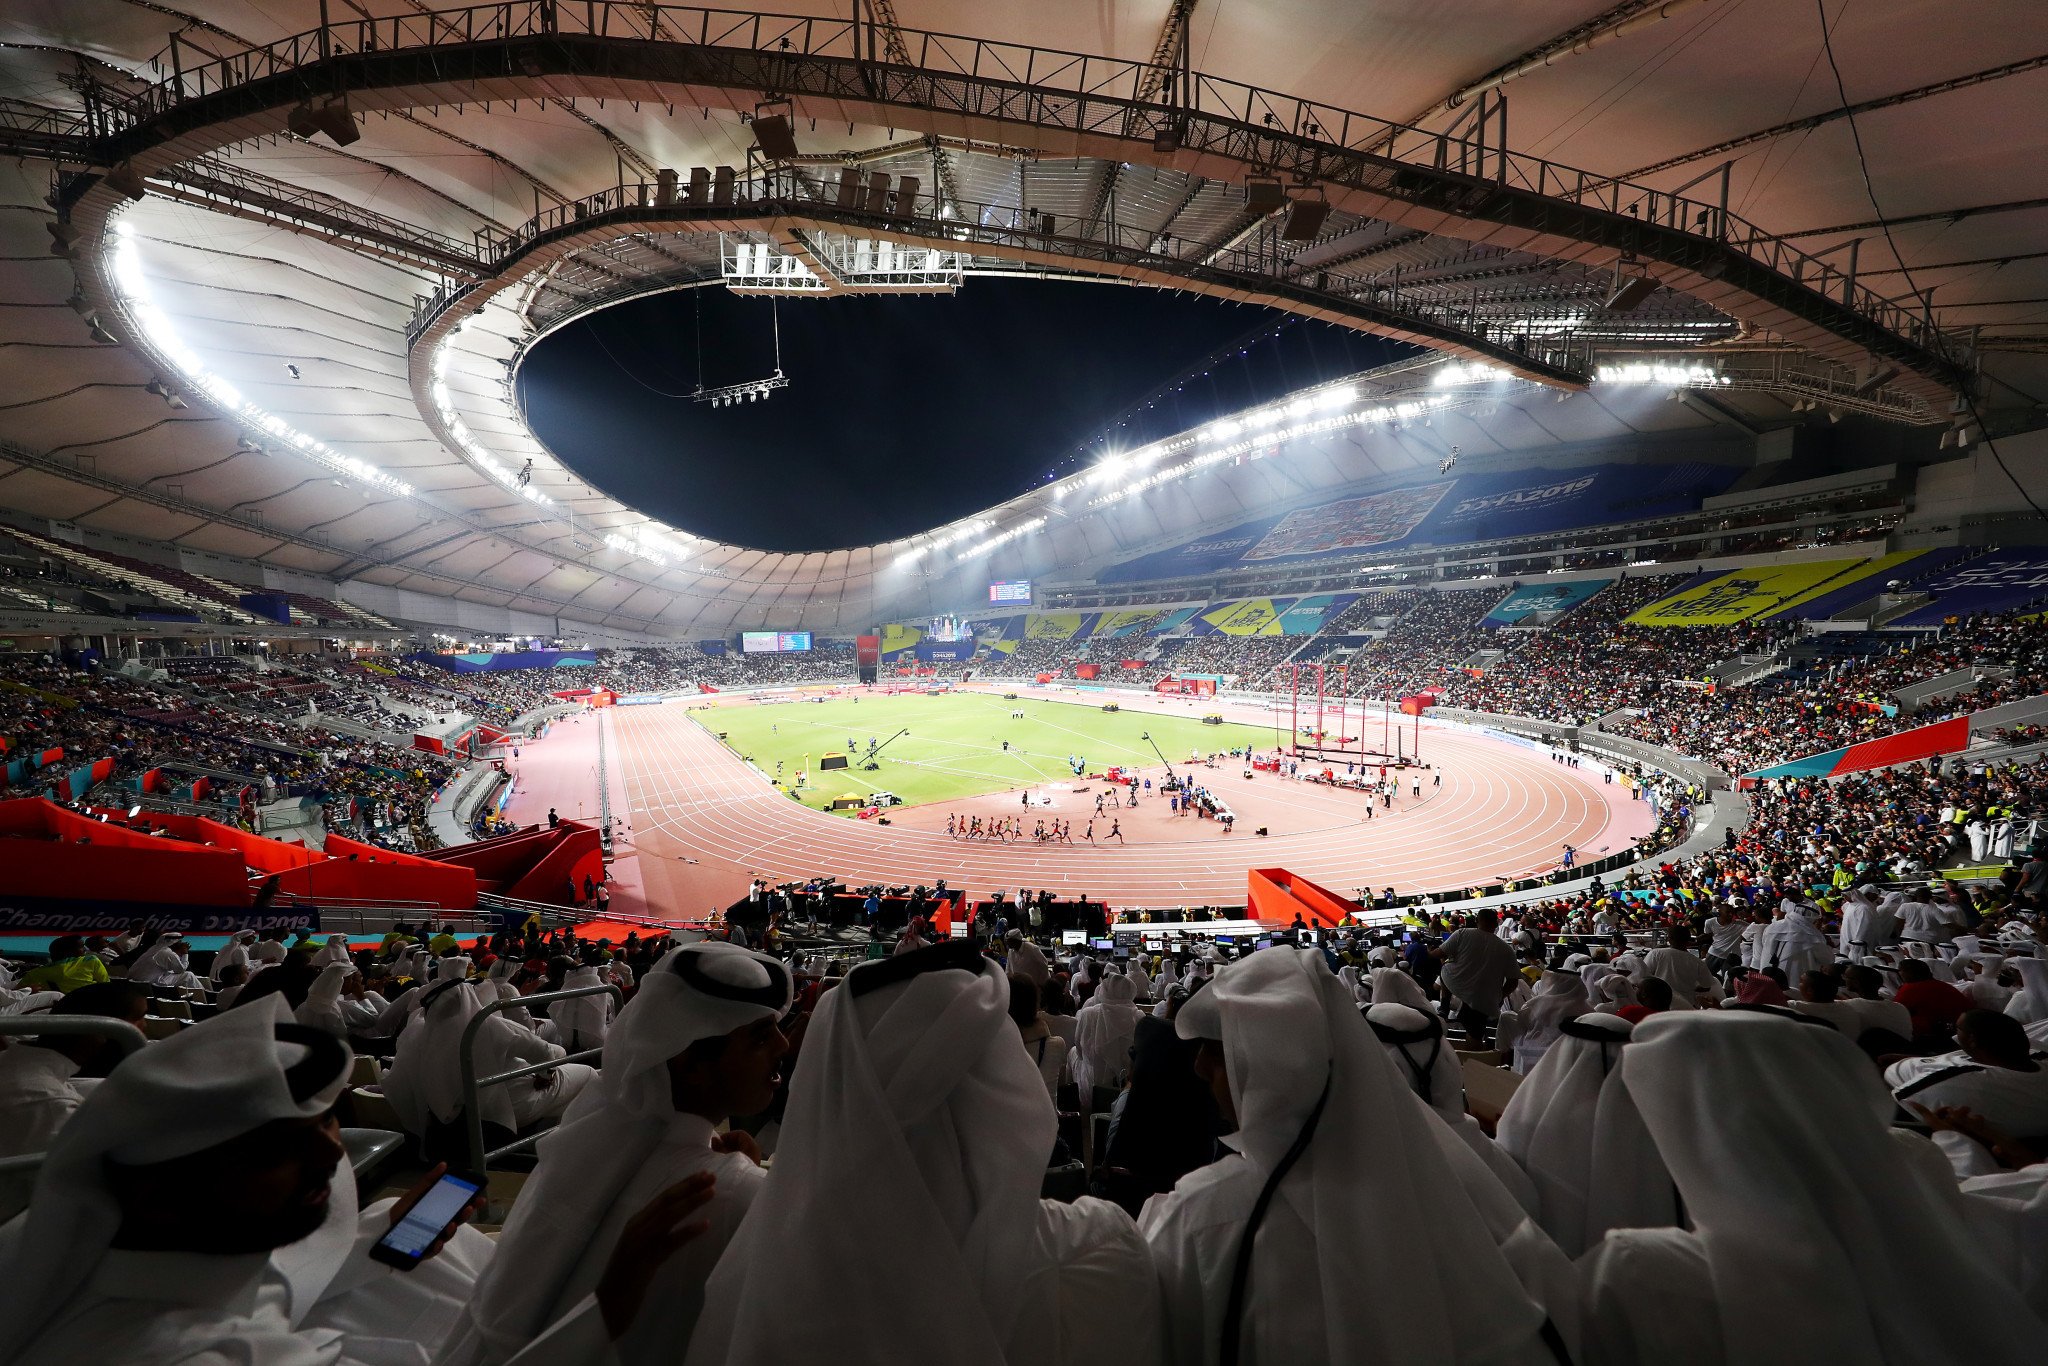 Qatar start offering free tickets for IAAF World Championships to boost attendances